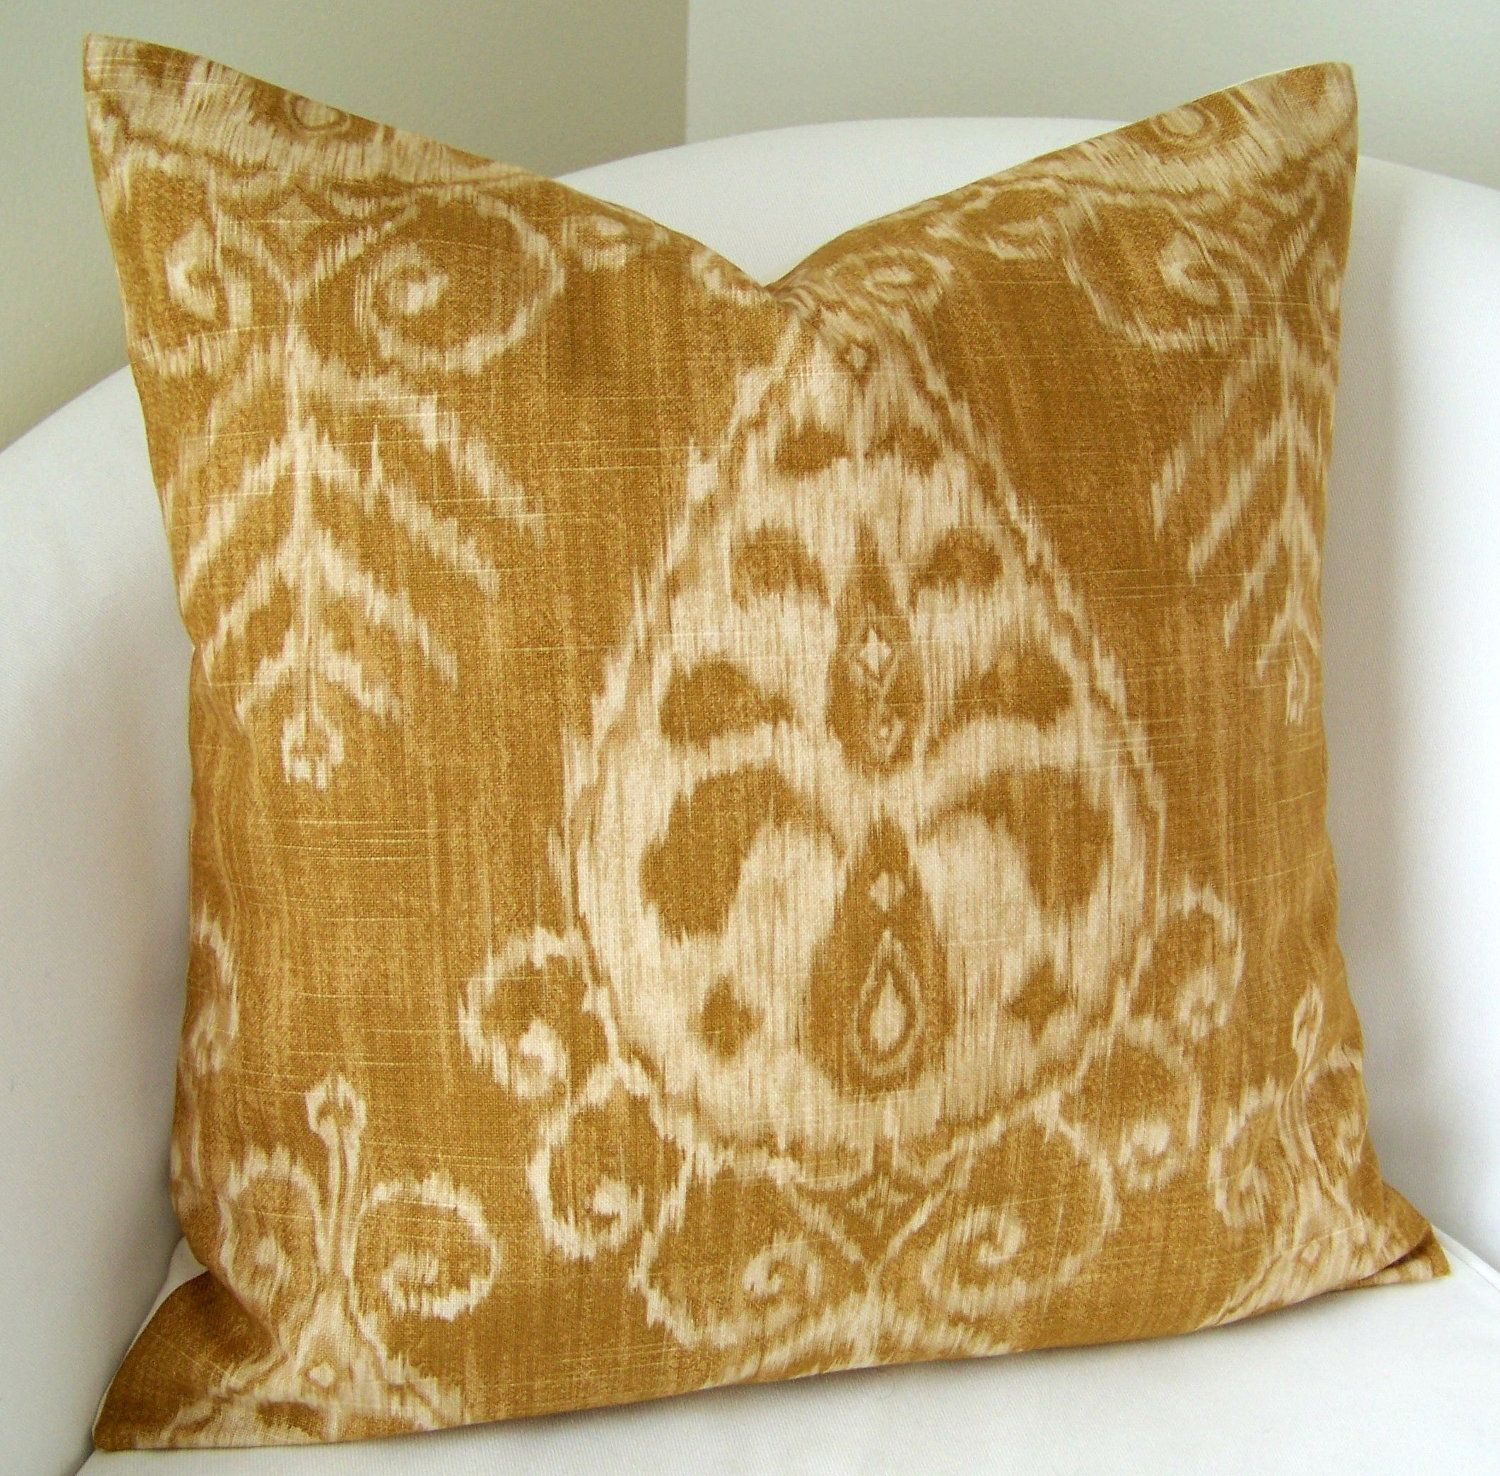 Decorative Throw Pillow Cover Gold Ikat Pillow 17x17 Inch Accent ...